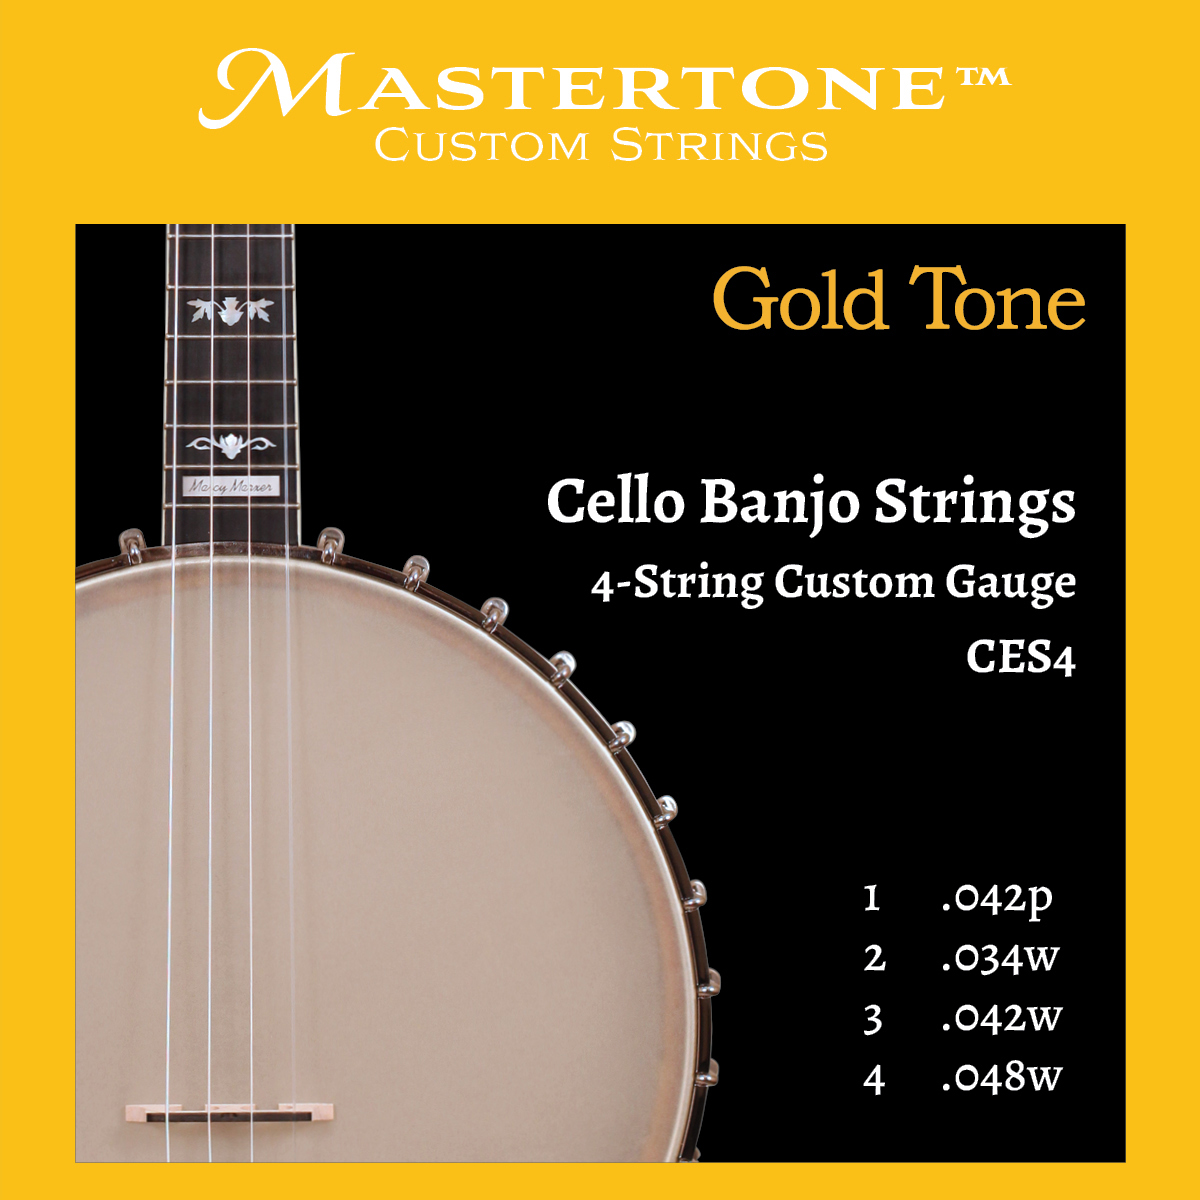 Banjo Cello 4-String Custom Gauge Strings